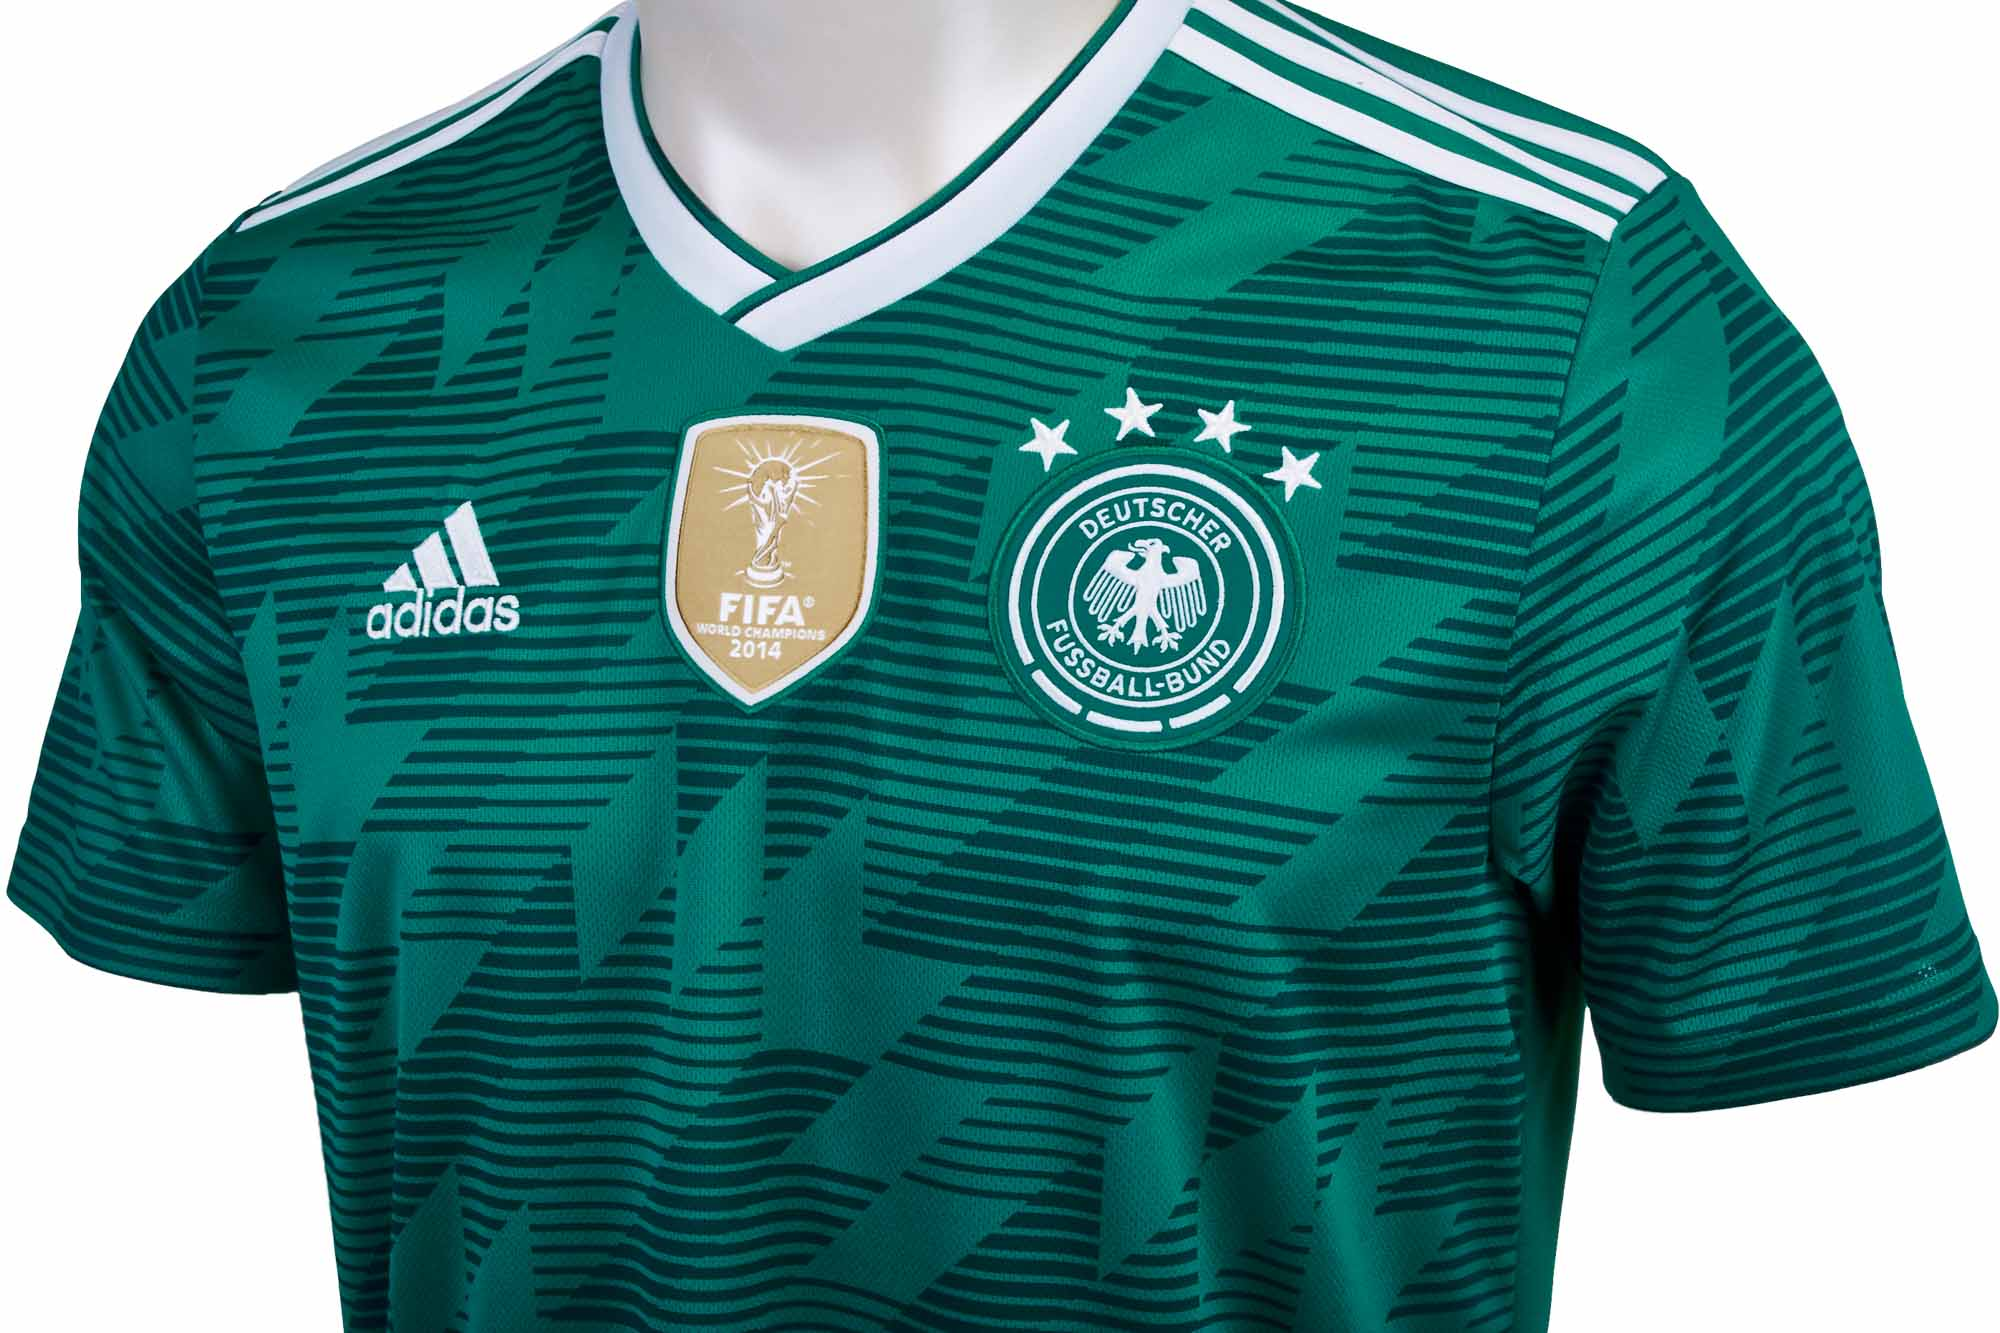 80da49c2d adidas Kids Germany Away Jersey 2018-19 - Soccerpro.com